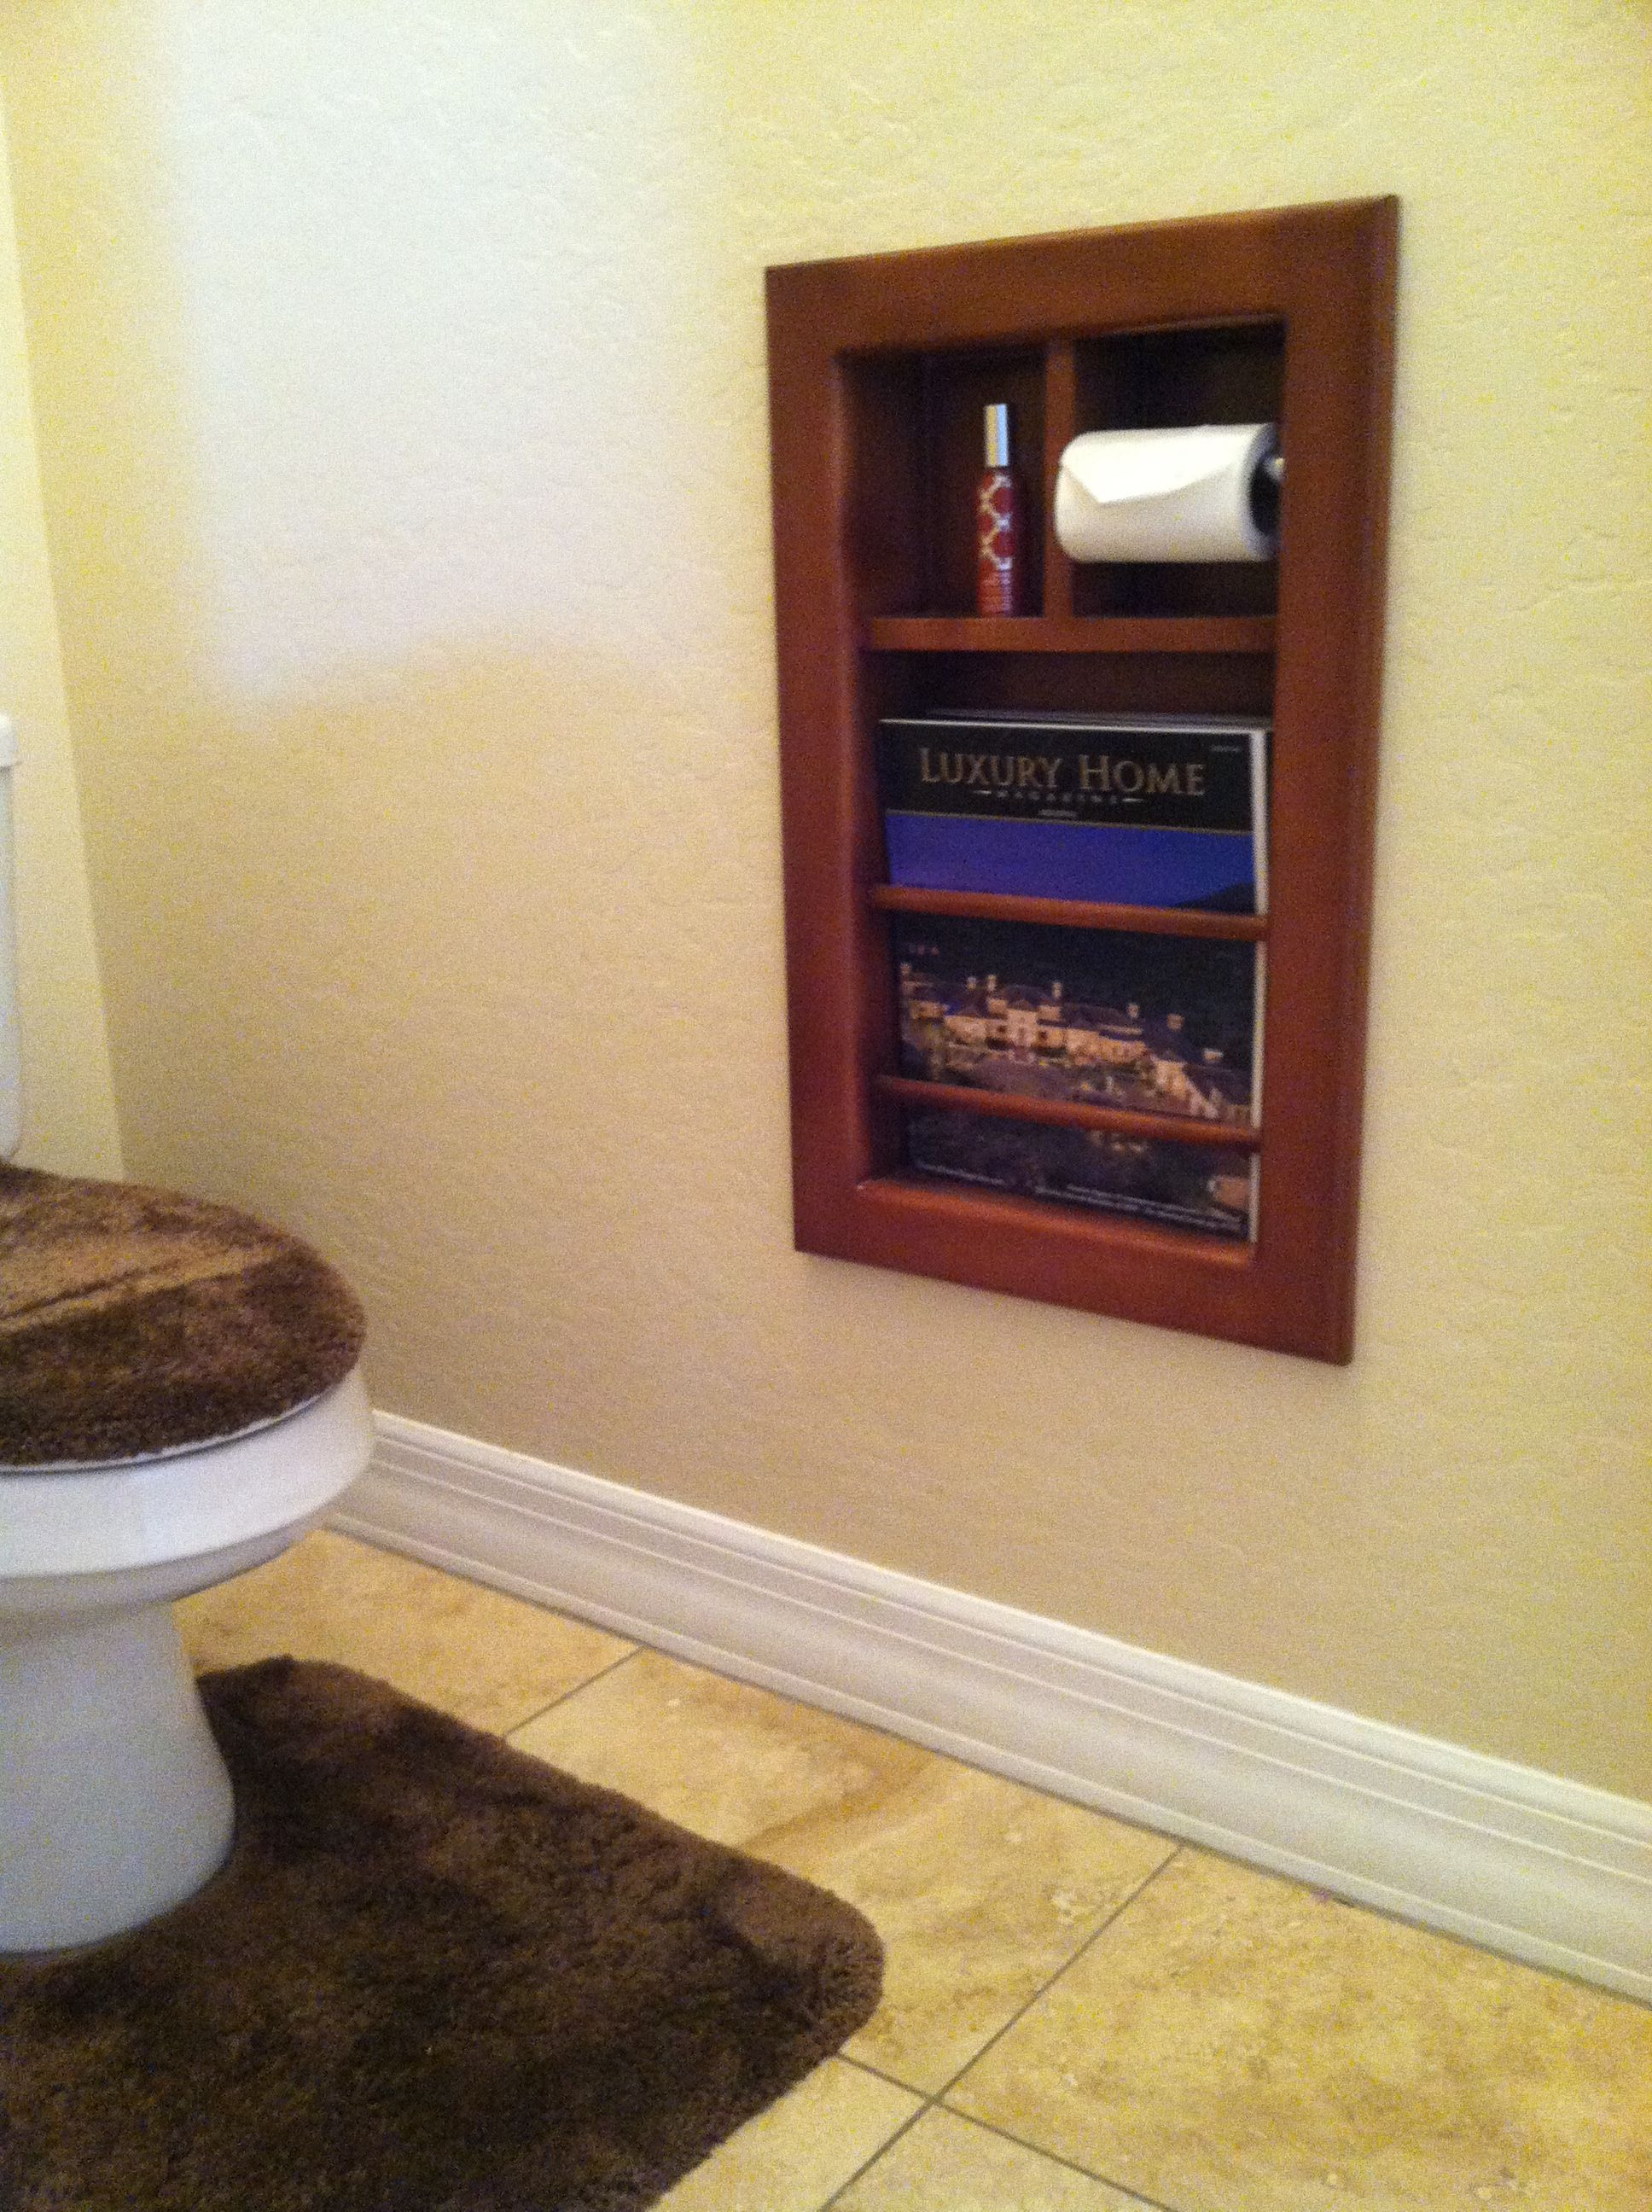 Built In Magazine Rack And Toilet Paper Roll For Toilet Room Closet Renovation Toilet Room Recessed Toilet Paper Holder